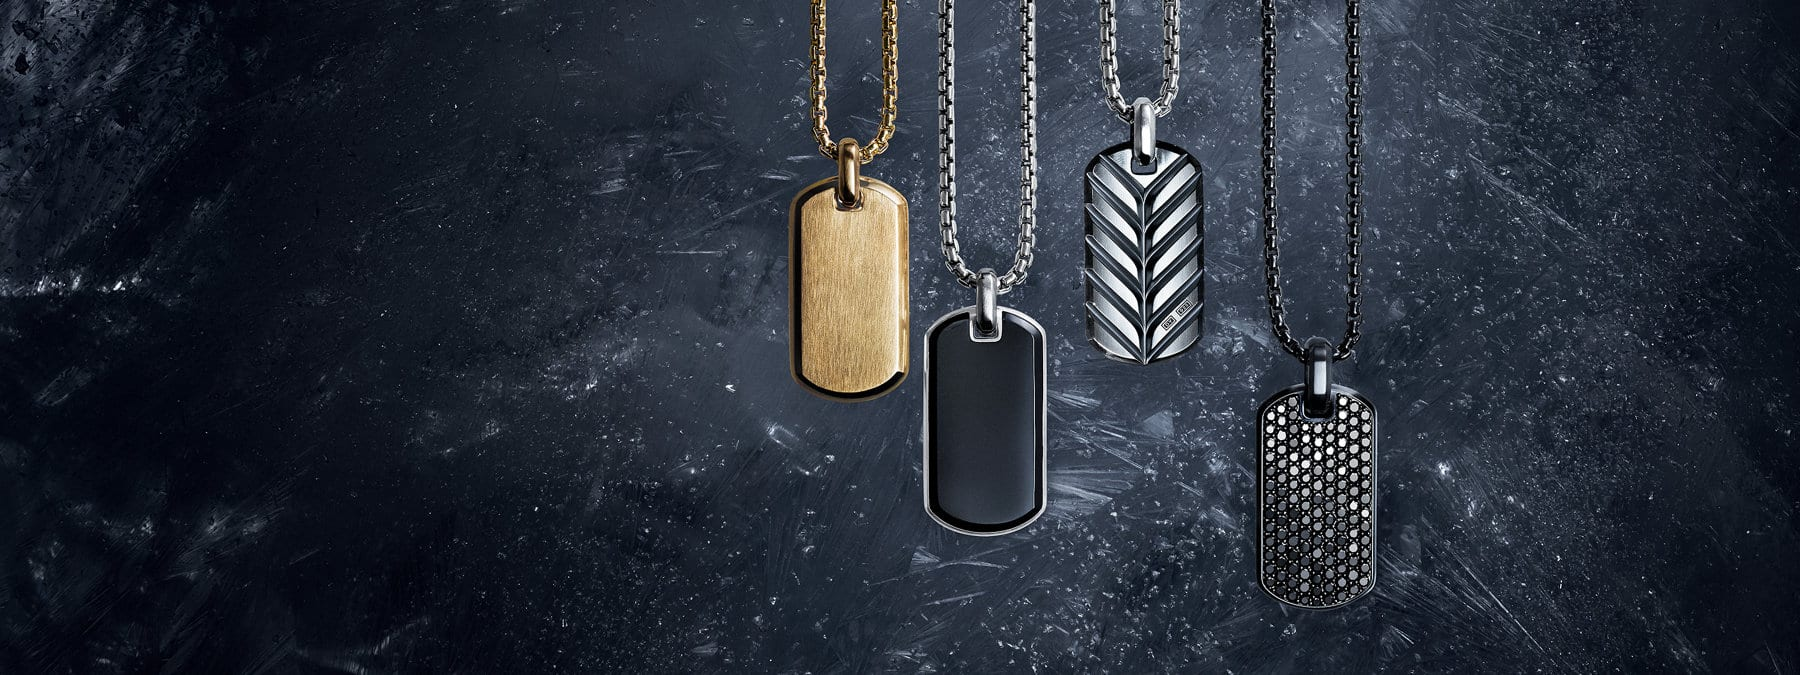 A color photograph shows a horizontal row of four David Yurman men's tags from the Streamline, Exotic Stone, Chevron and Pavé collections hanging on box-chain necklaces at different levels in front of a dark, icy surface dusted with snow. The tags are crafted from 18K yellow gold, sterling silver with or without black onyx and black titanium with pavé black diamonds. The chains are crafted from 18K yellow gold, sterling silver or black titanium.